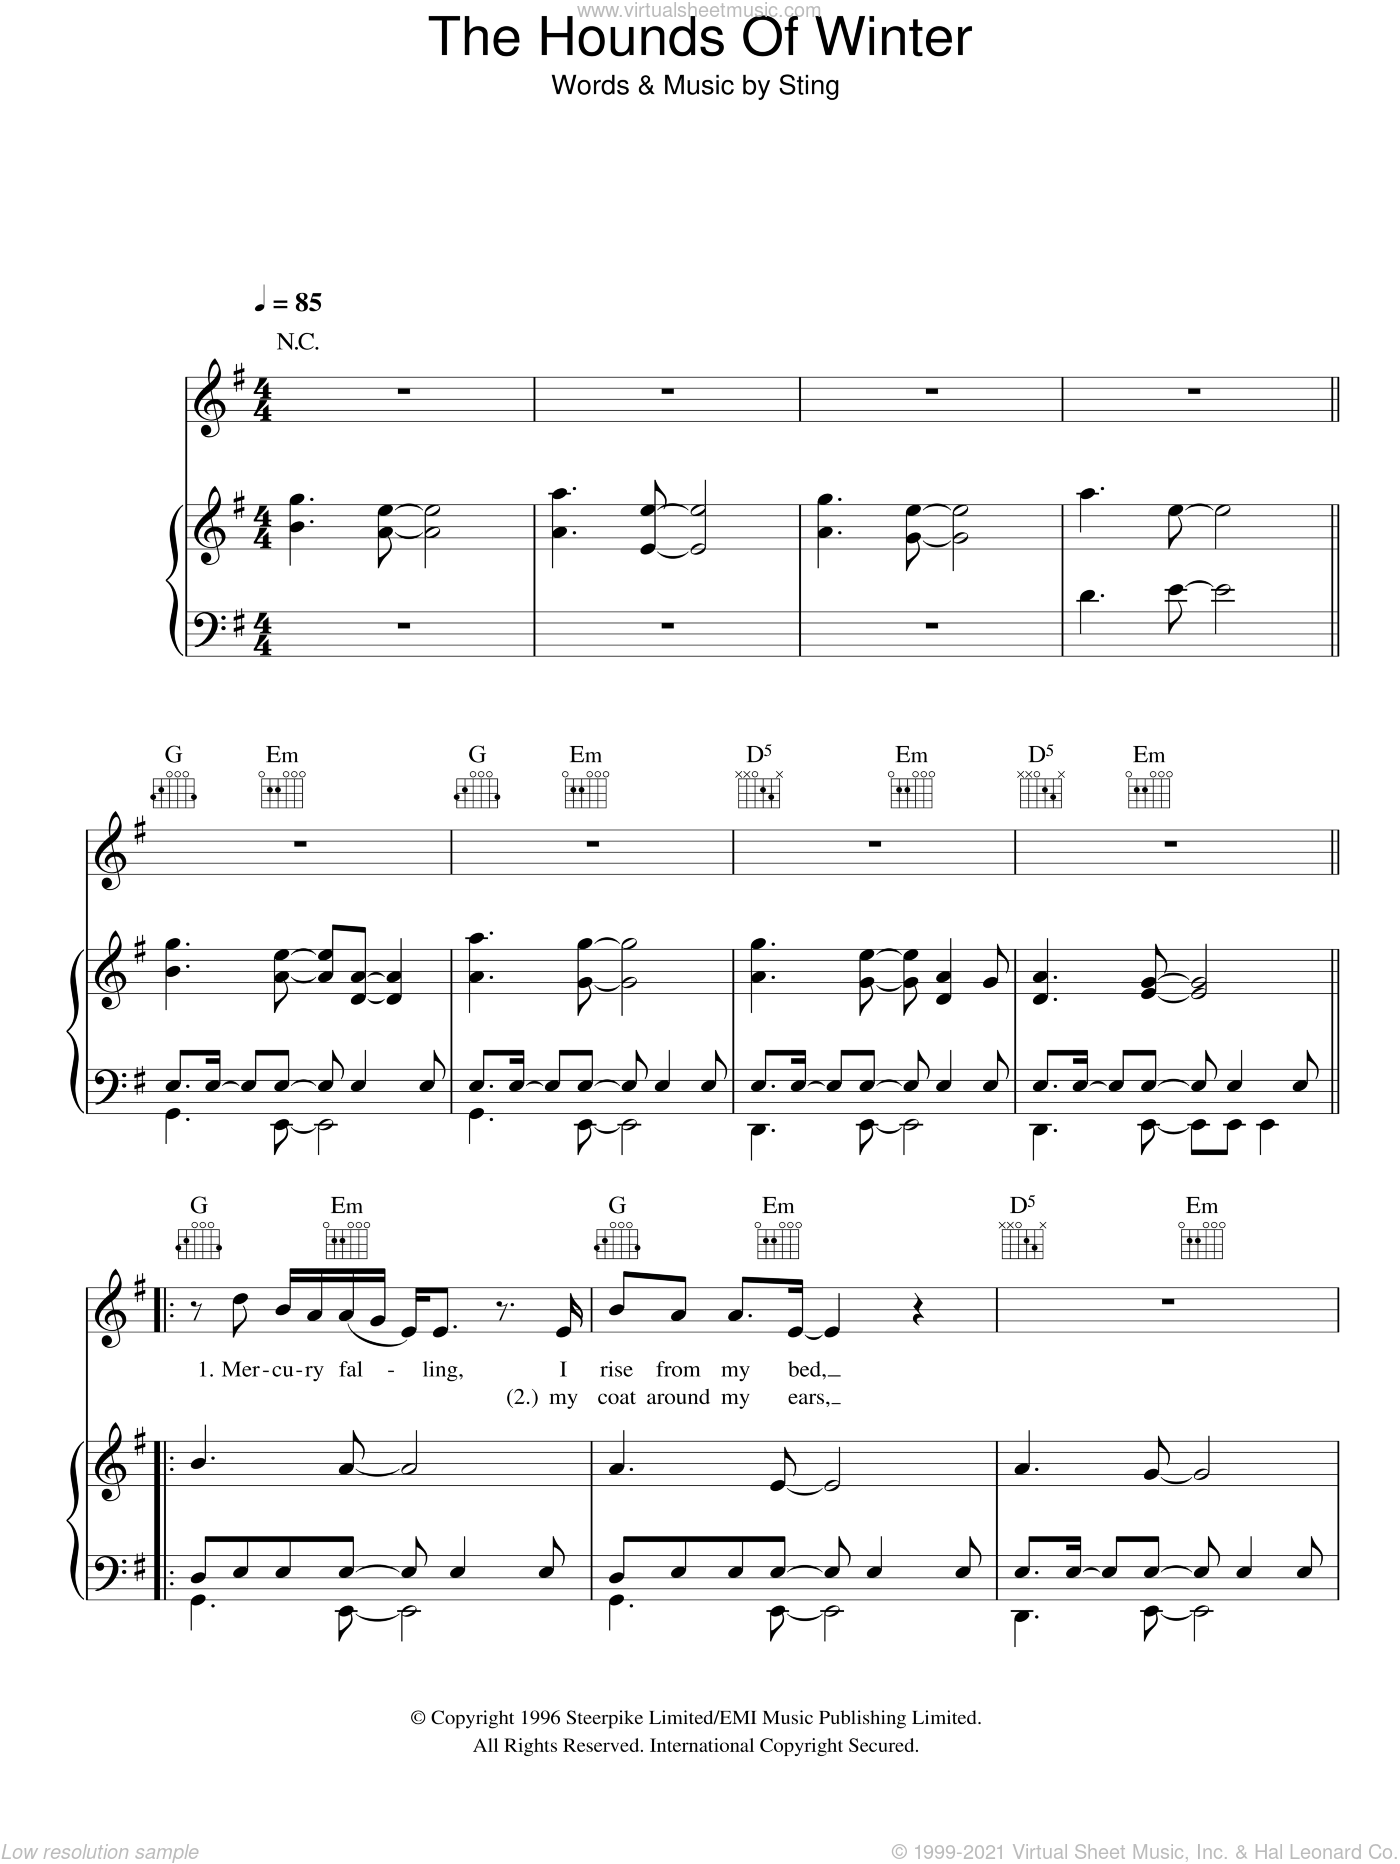 The Hounds Of Winter sheet music for voice, piano or guitar by Sting, intermediate. Score Image Preview.